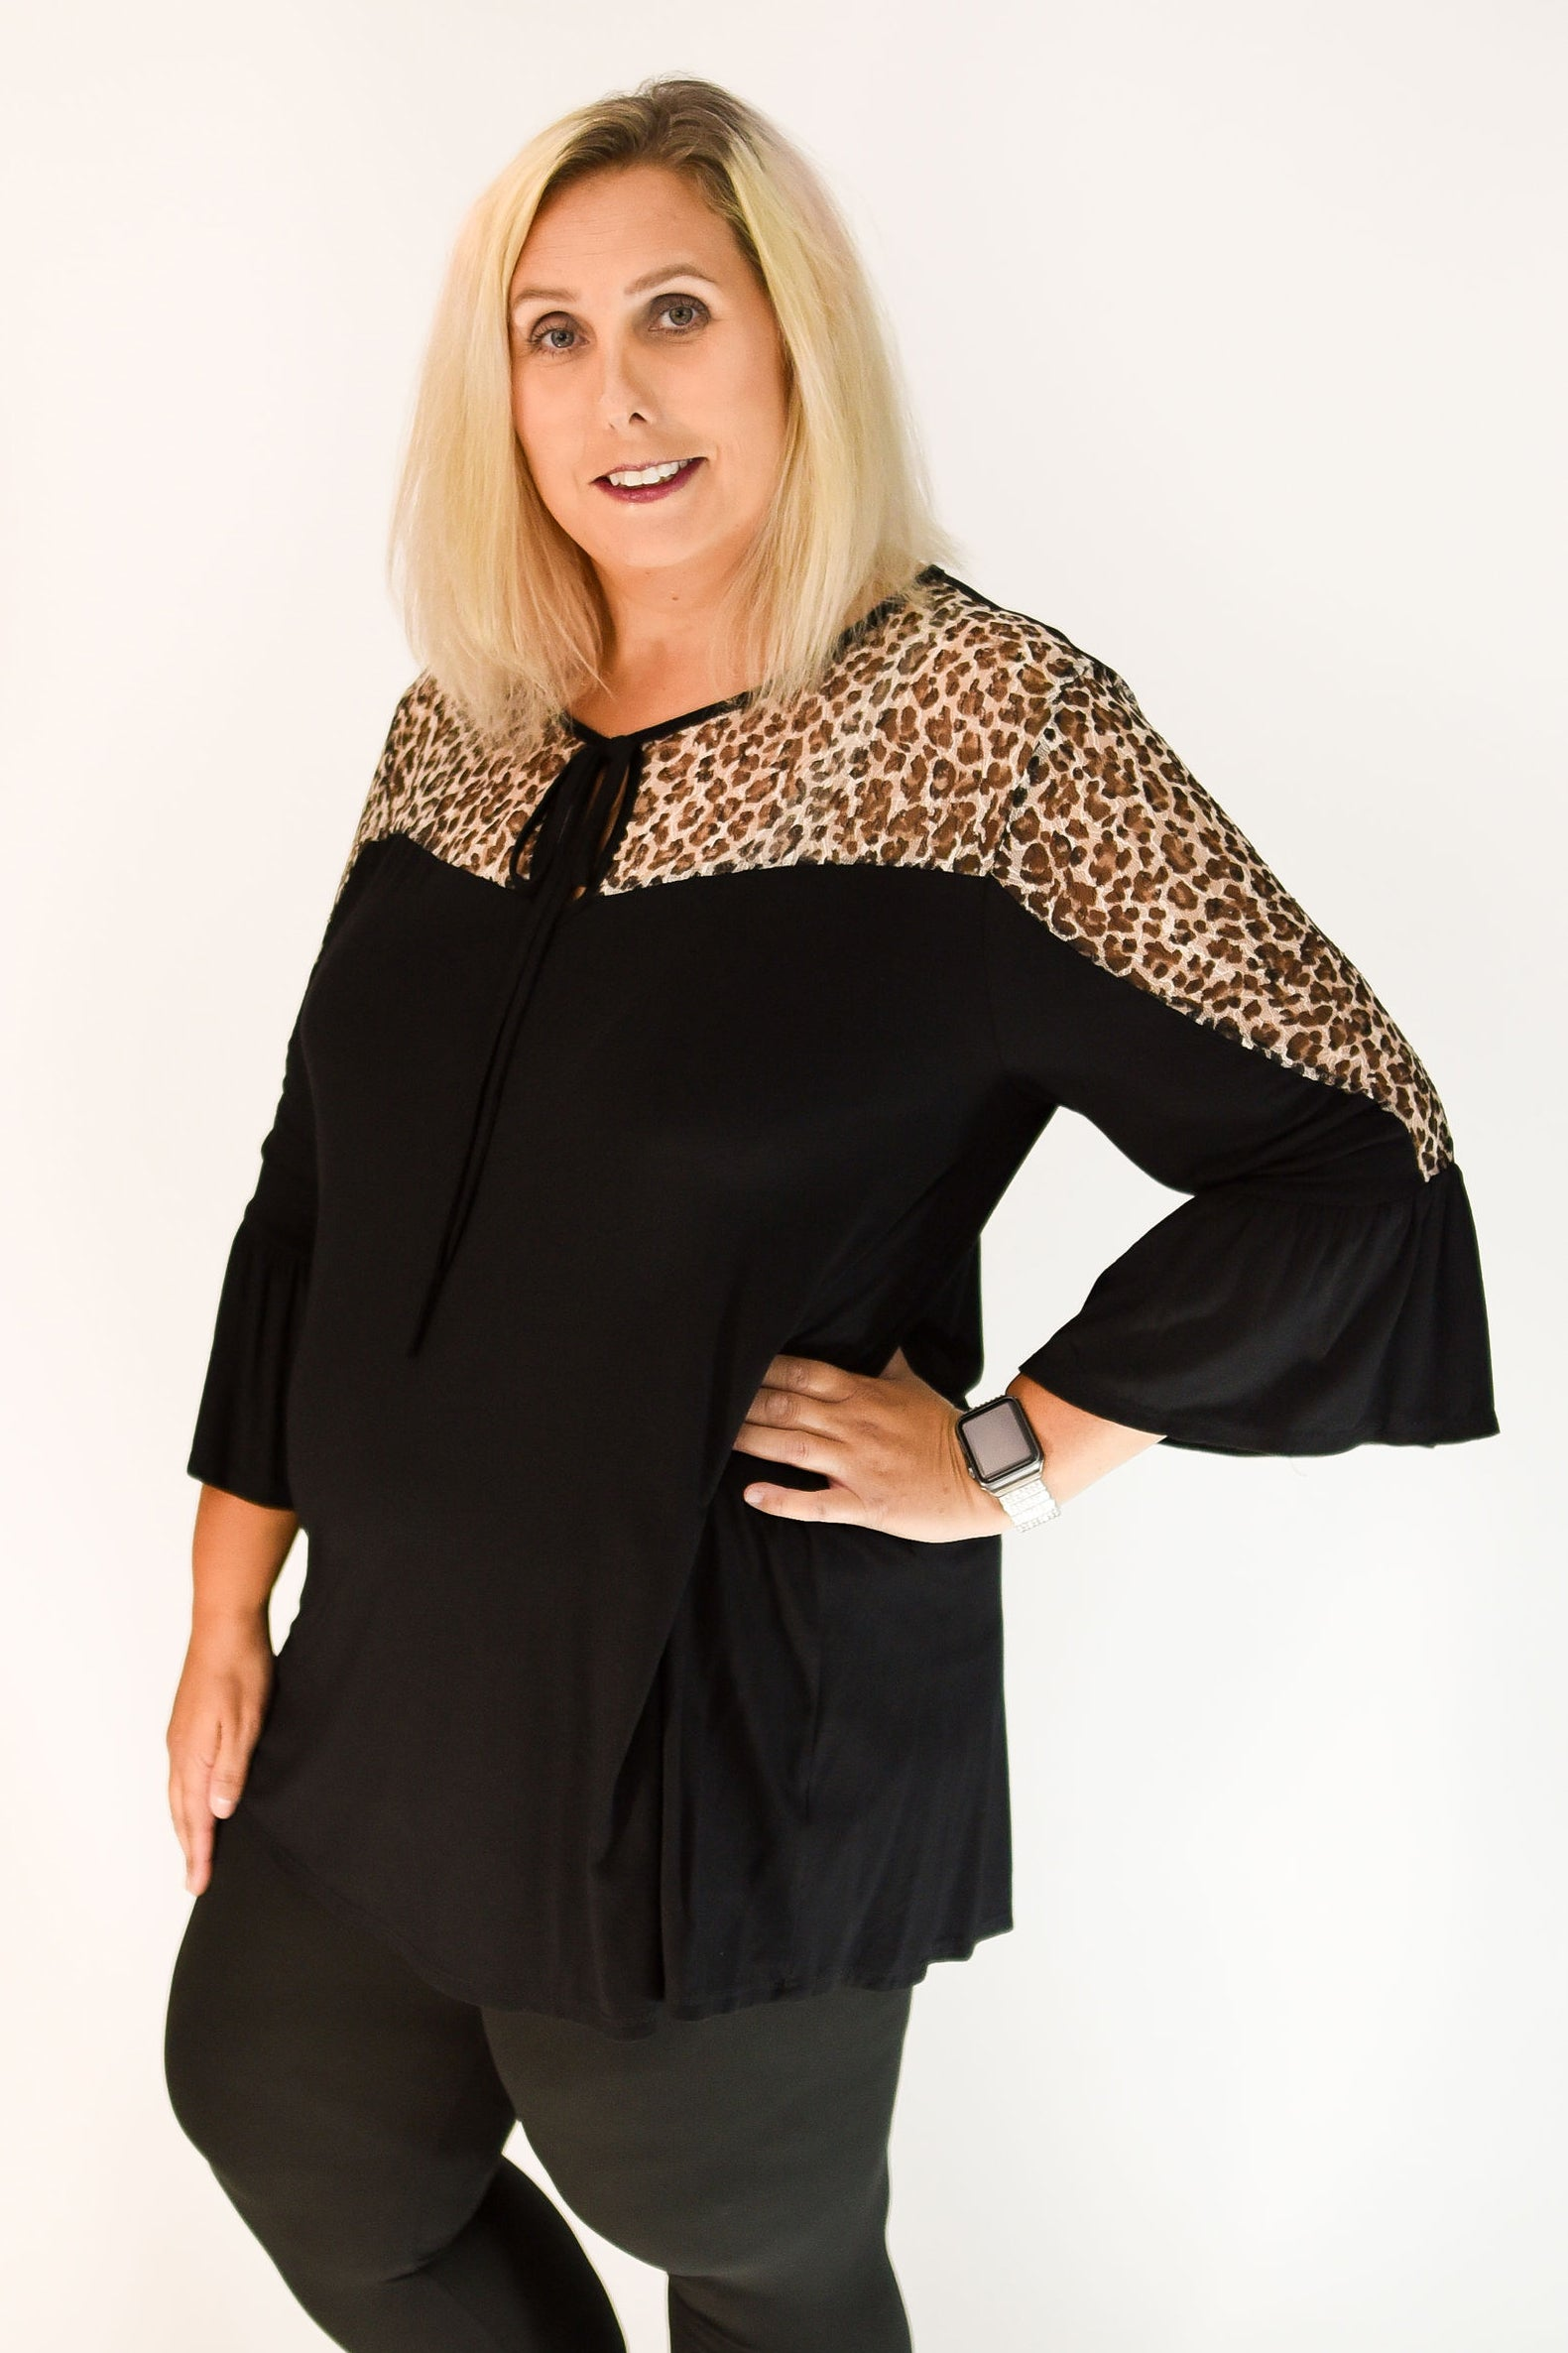 97c6b0e53c9 Loose Fit Black   Animal Print Curvy Top with Bell Sleeves